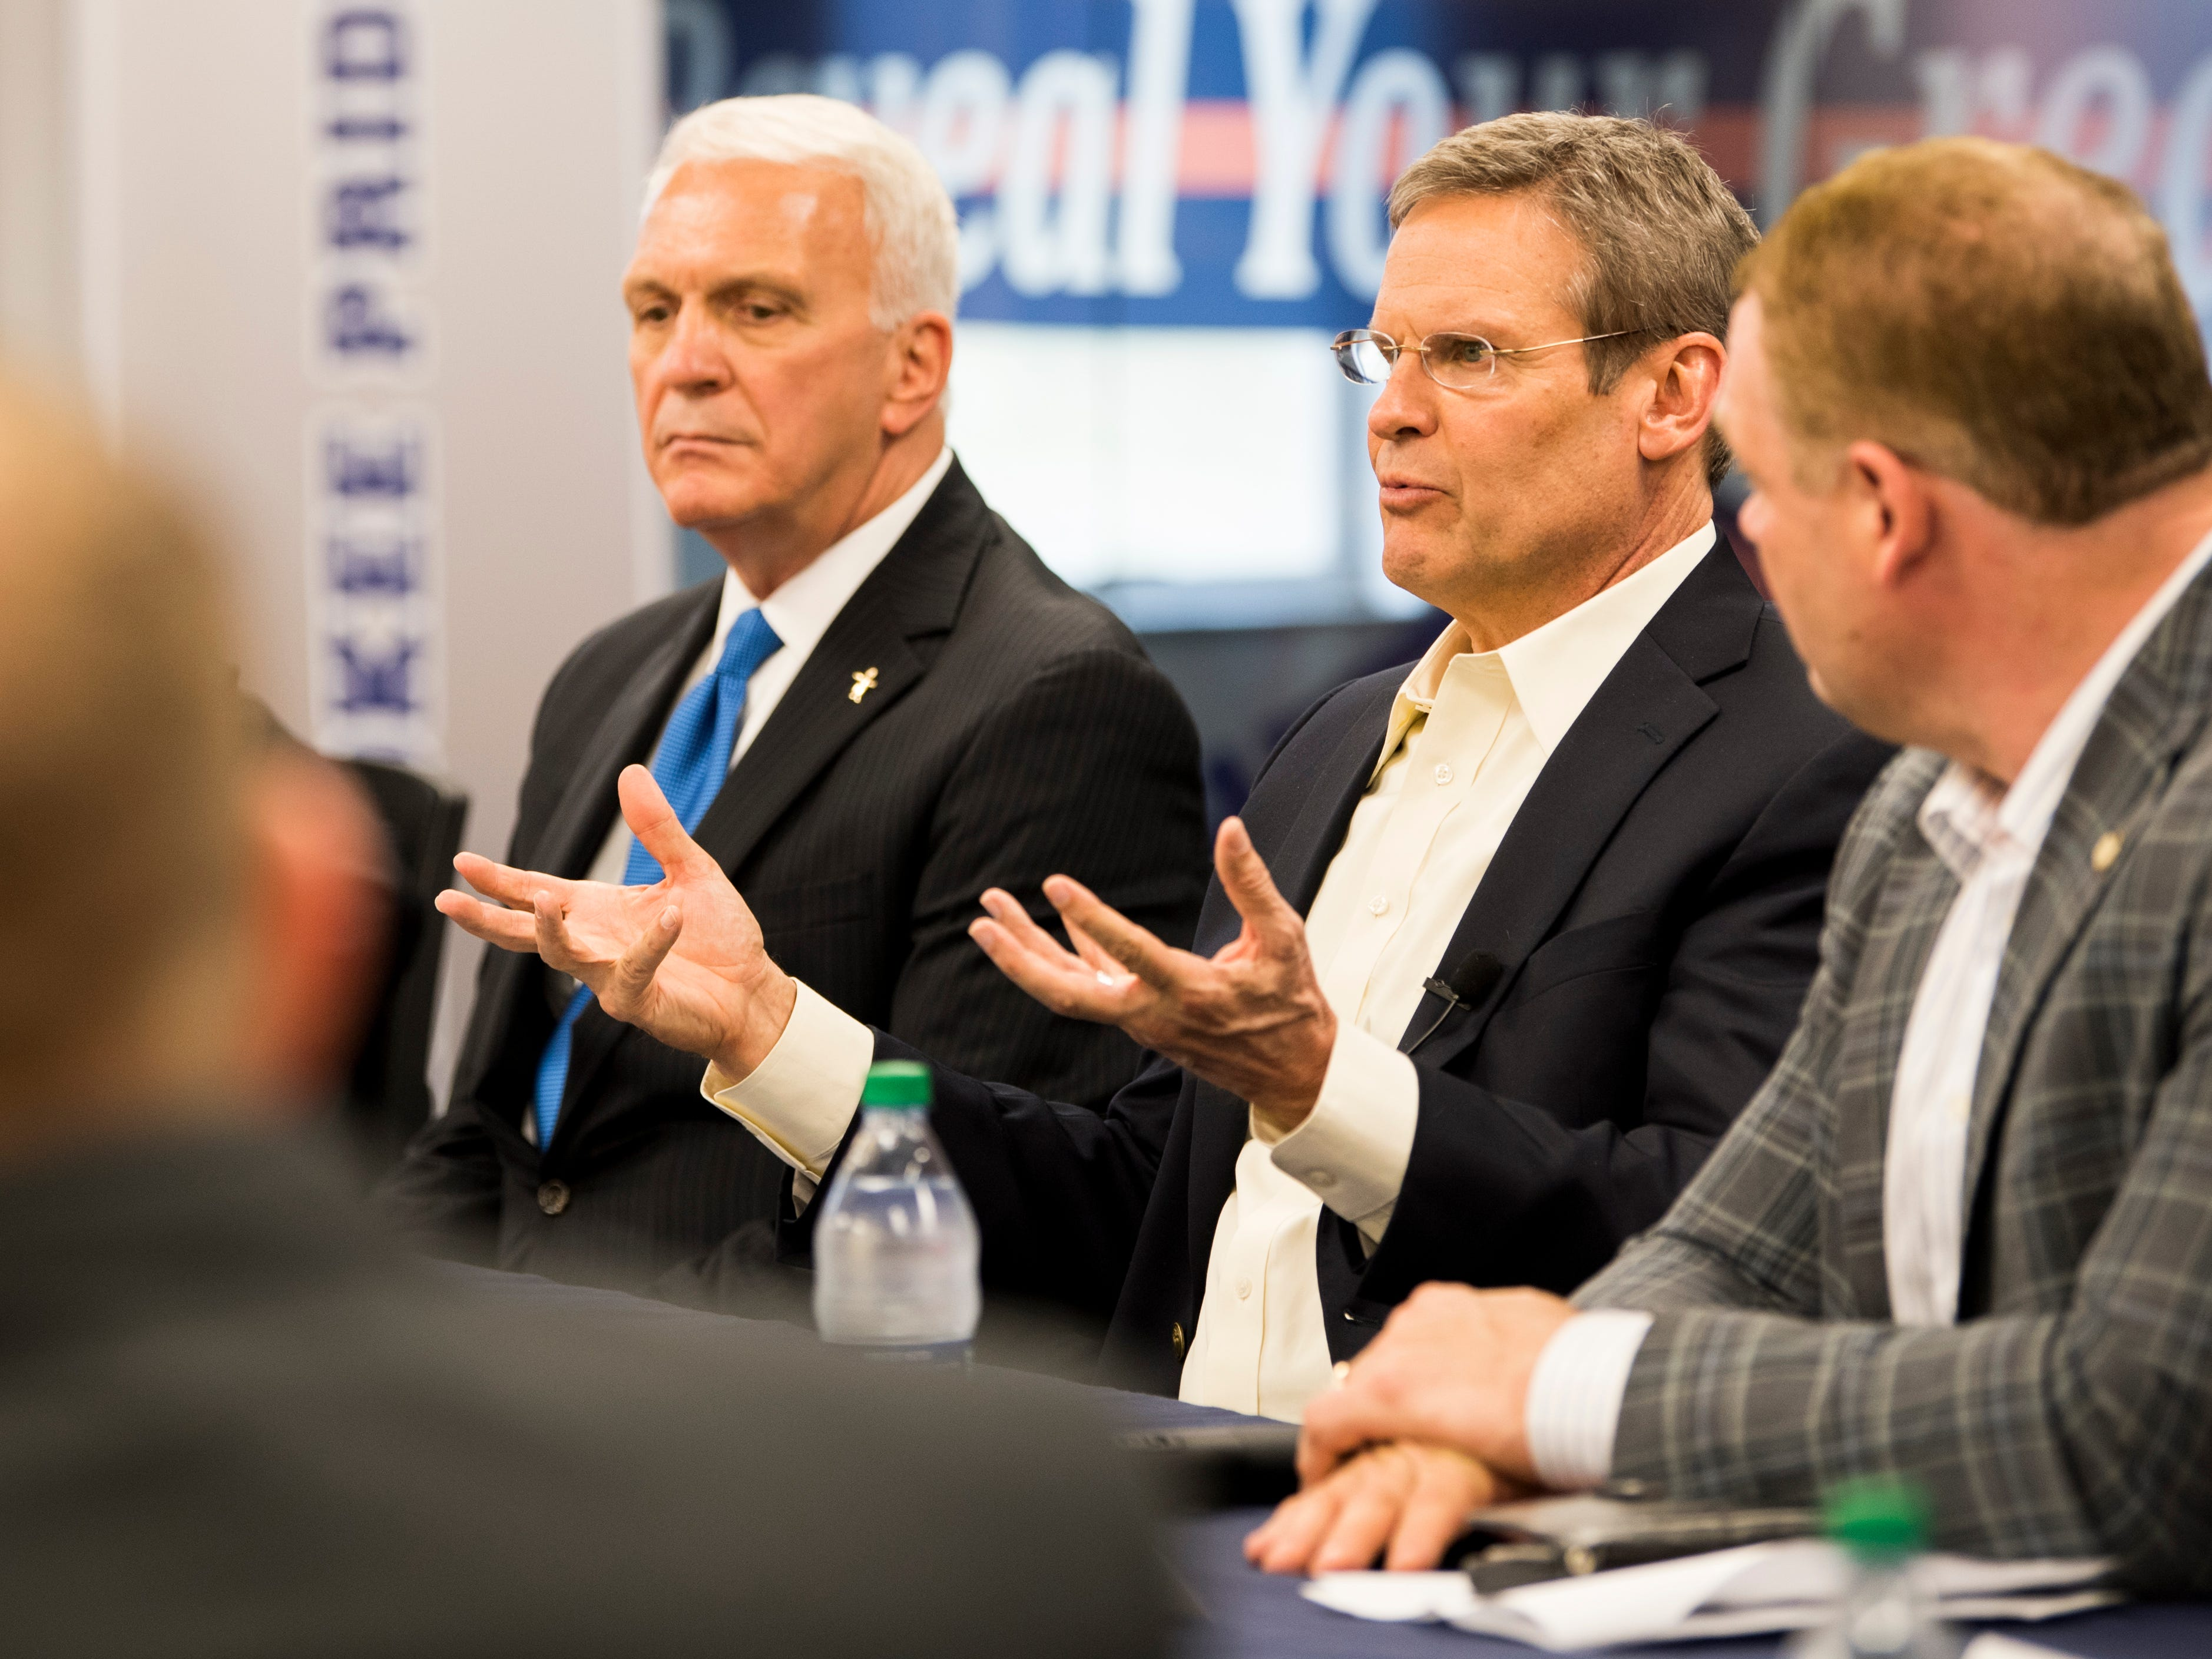 Tennessee Gov. Bill Lee, center, answers a question during a roundtable event at South-Doyle High in South Knoxville on Friday, February 15, 2019.